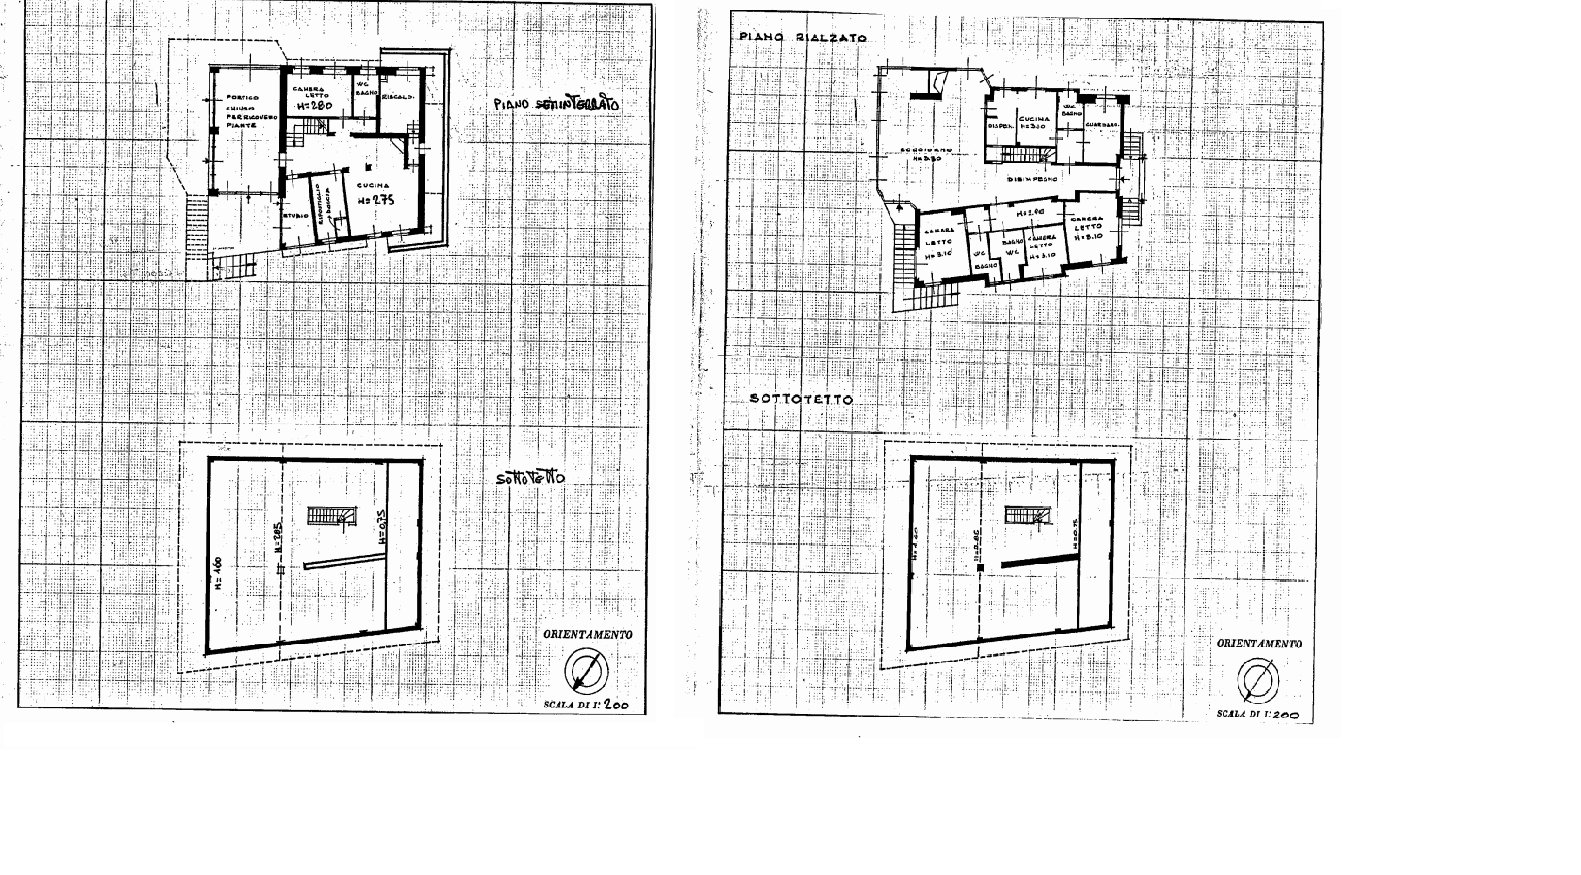 Elegant villa with garden for sale in Stresa - floor plan A